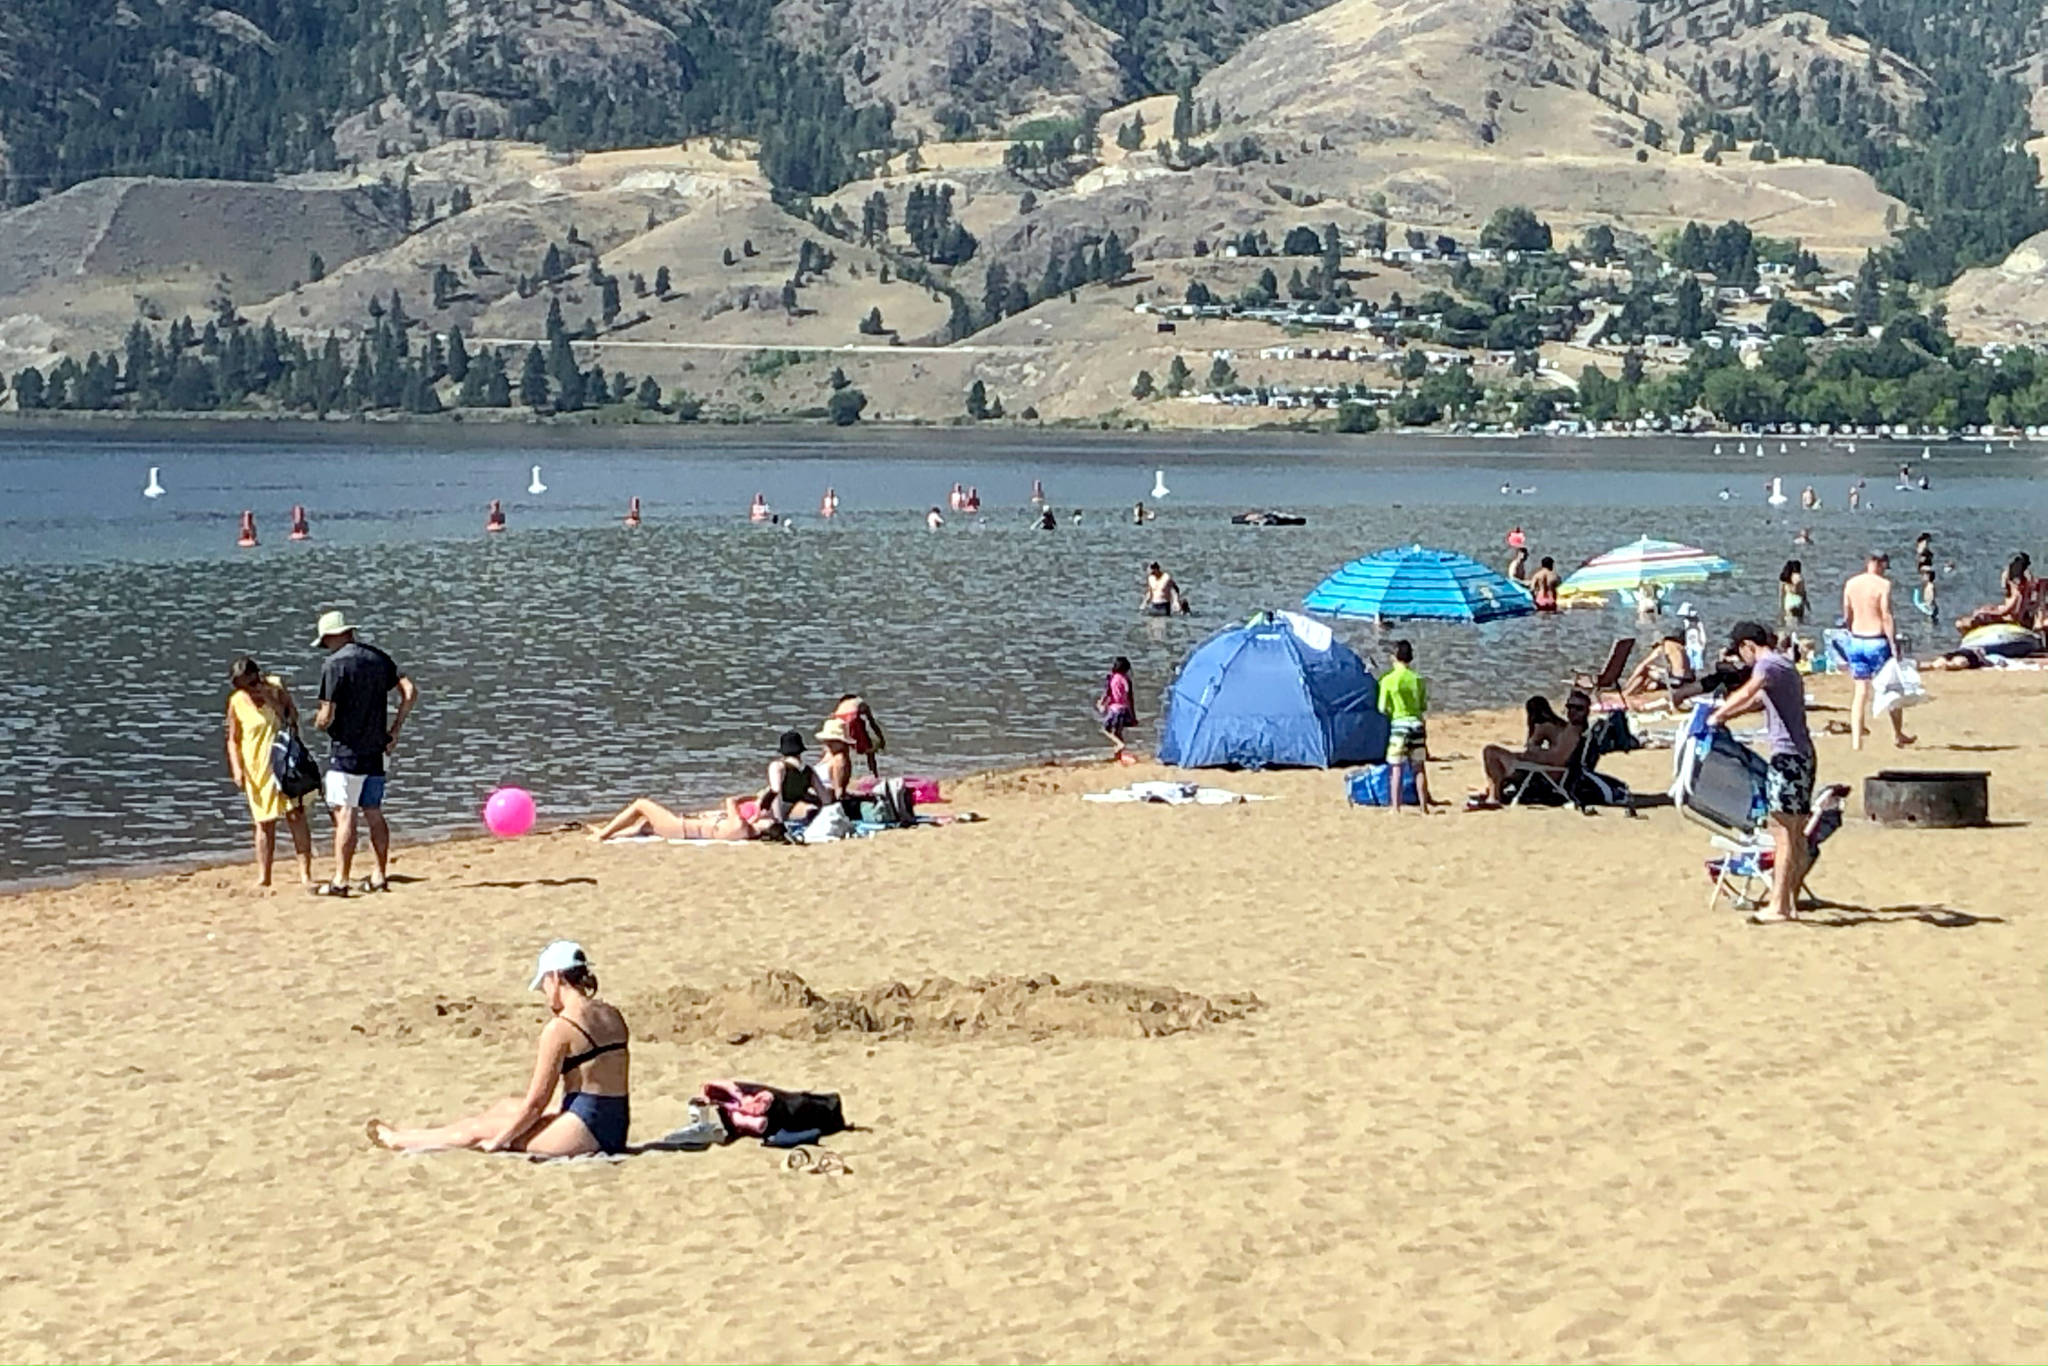 June is a time for spending long, sunny days at the beach. The beach at Skaha Lake in Penticton is one of many popular British Columbia beaches. (Black Press file photo)